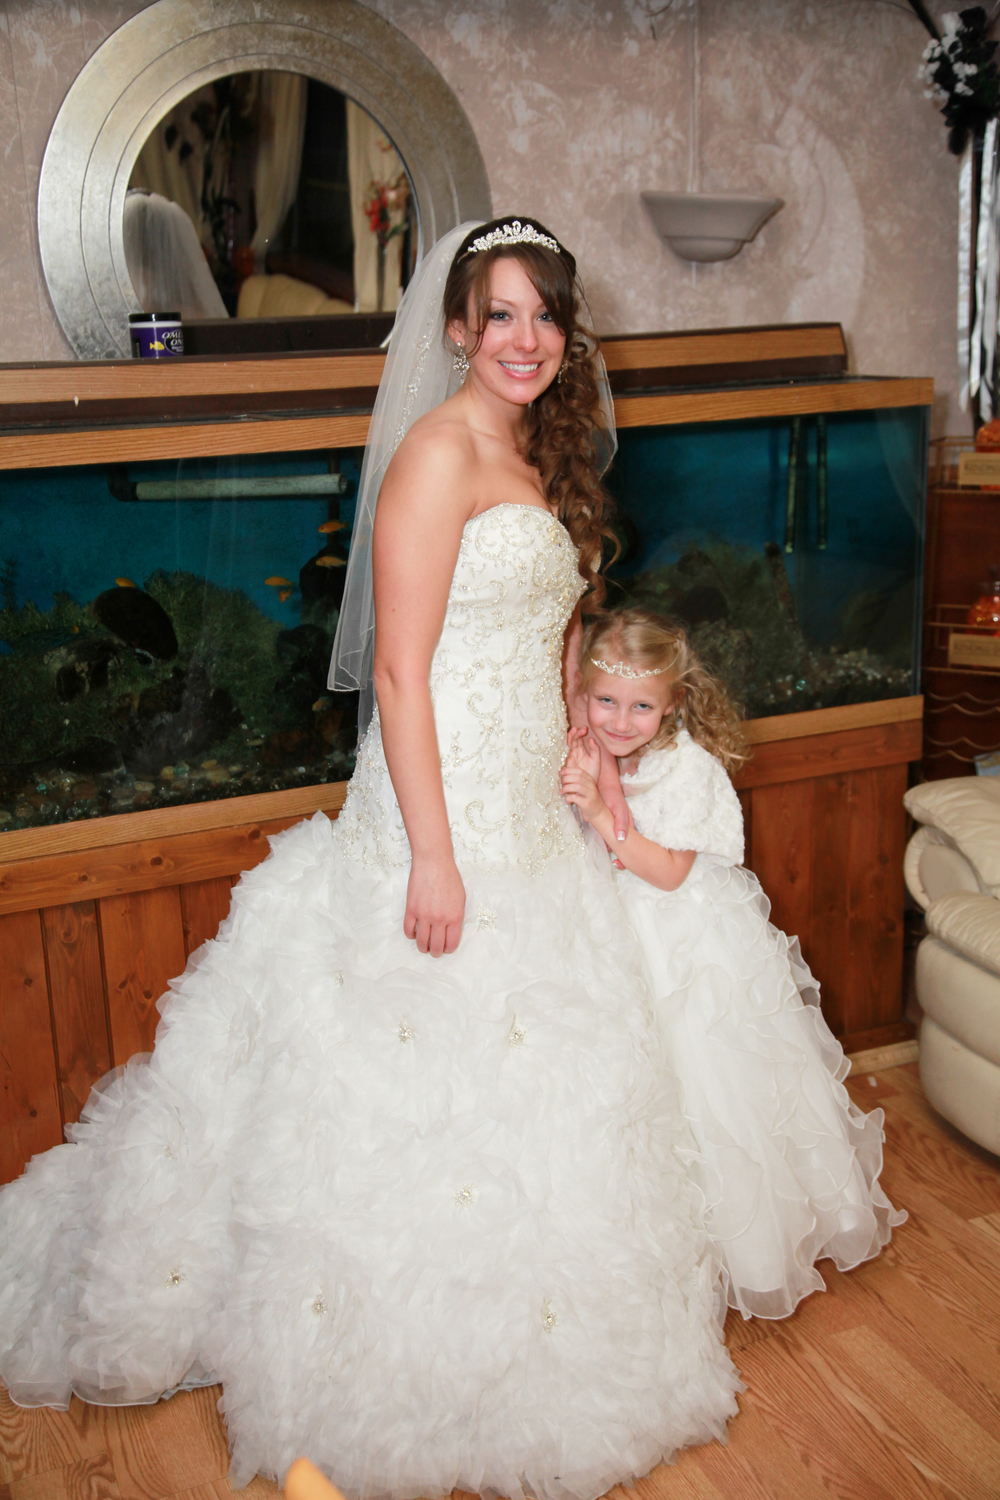 Beautful bride photographed with her flower girl at the